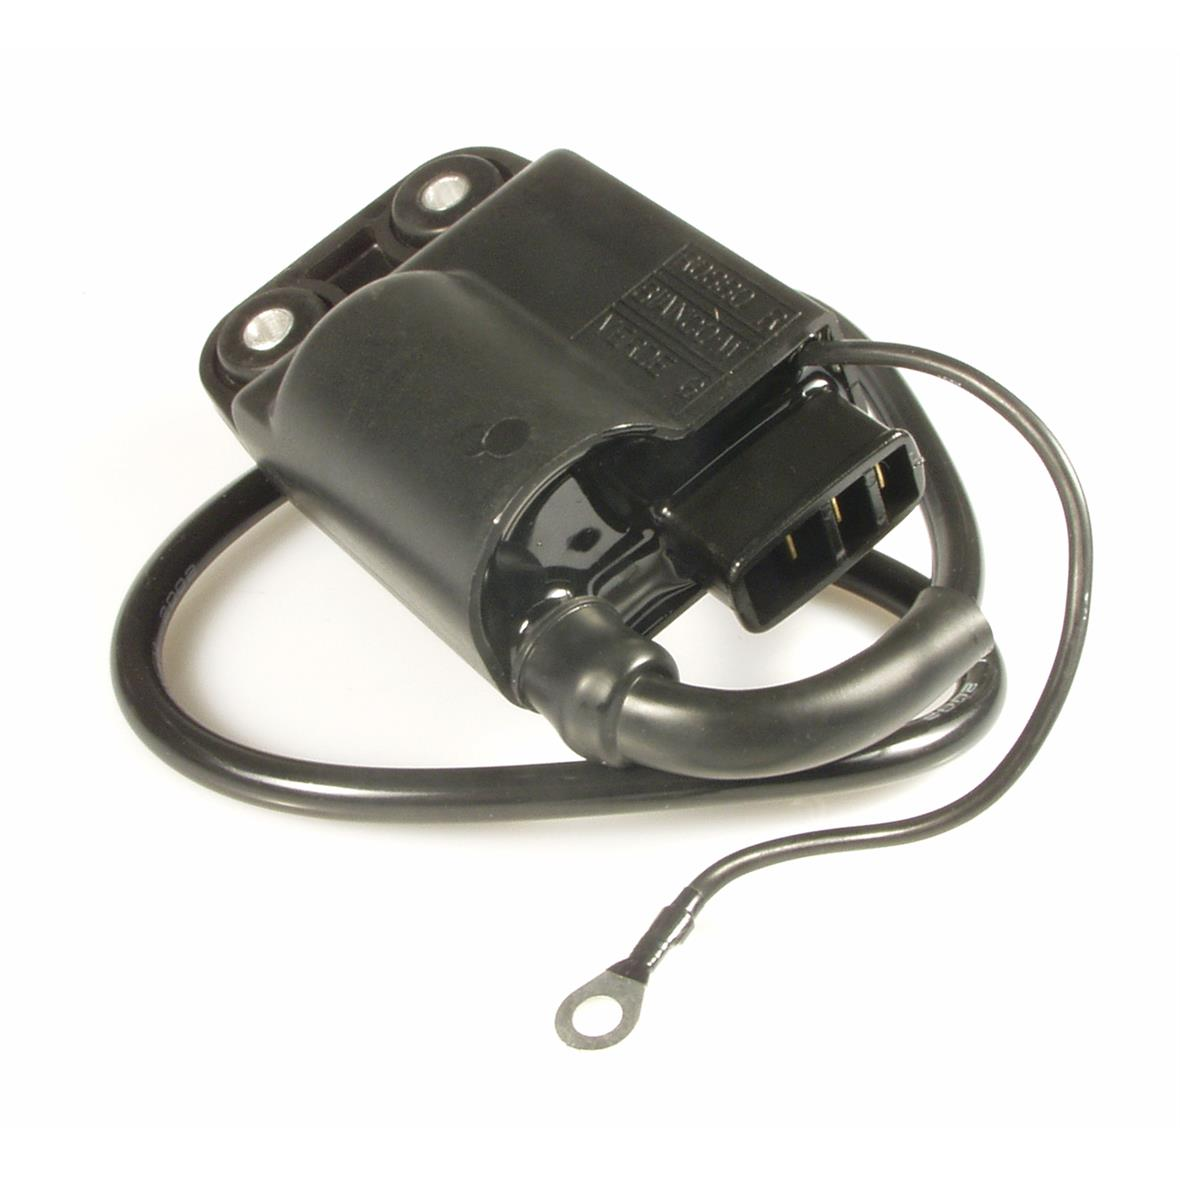 Product Image for 'CDI Ignition Coil RMSTitle'